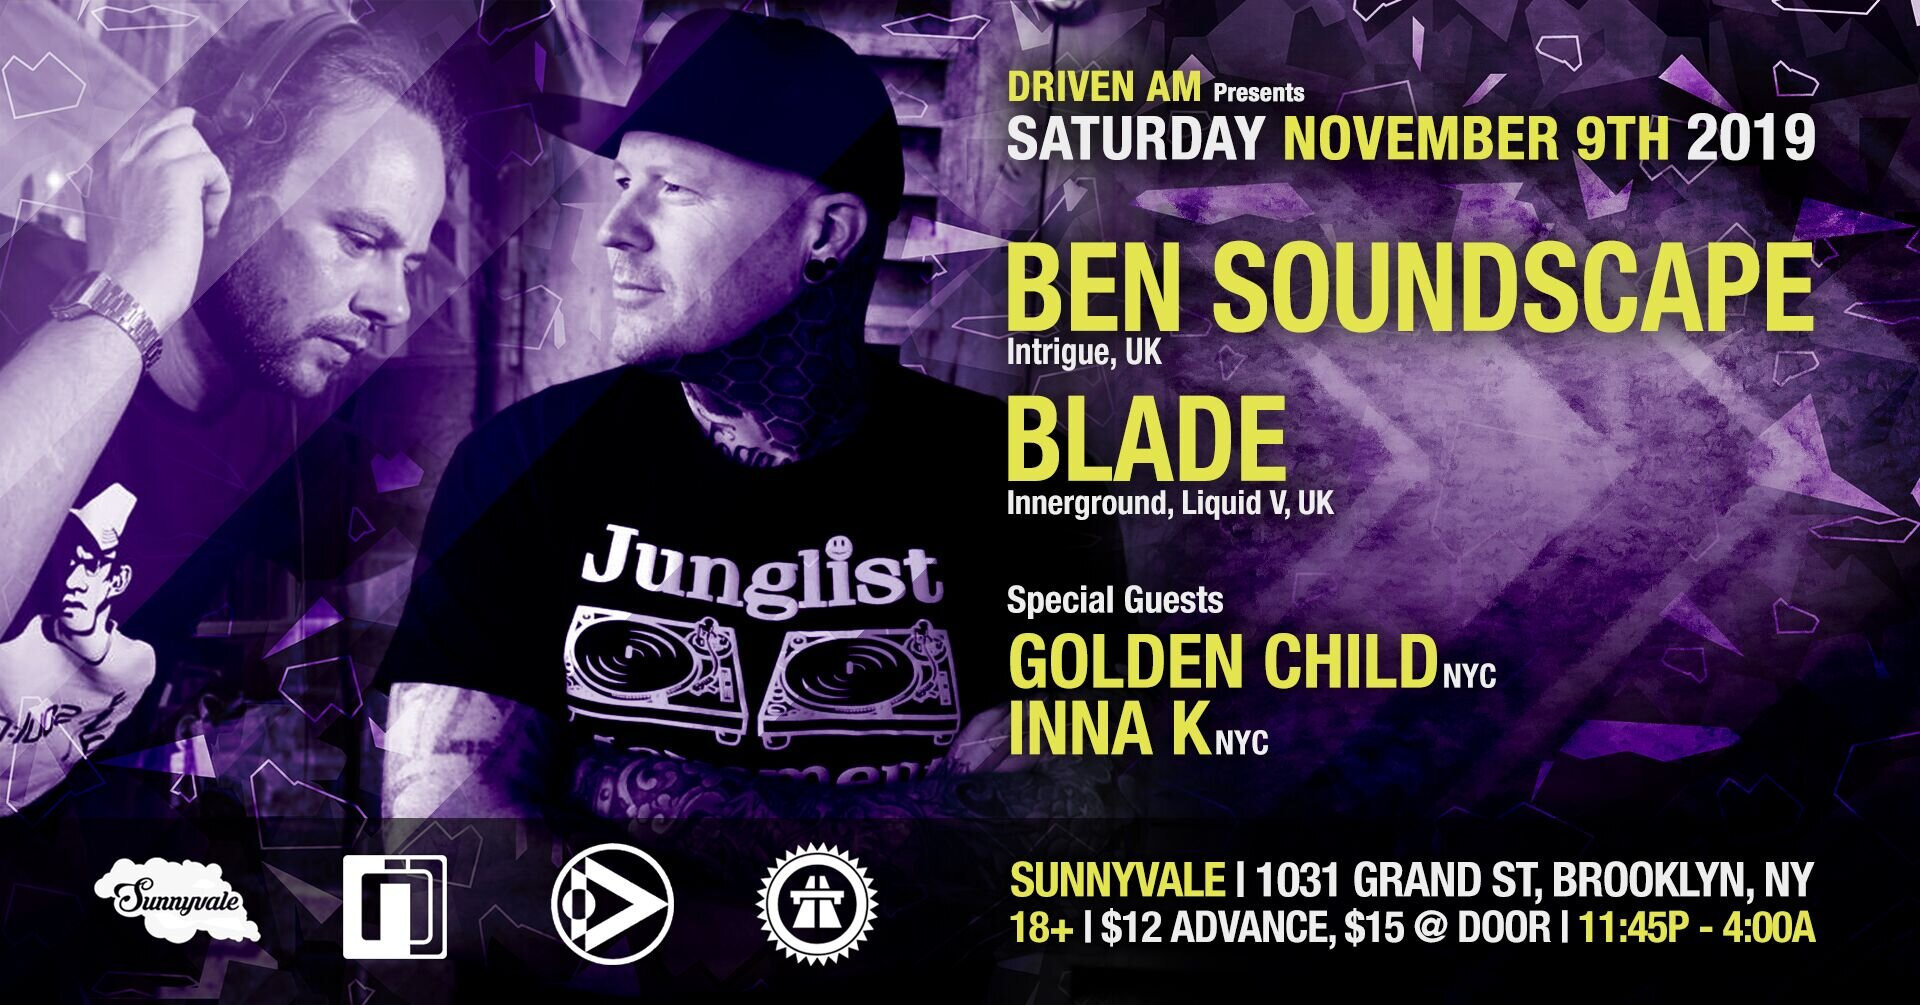 blade and ben soundscape november driven am 2019.jpeg